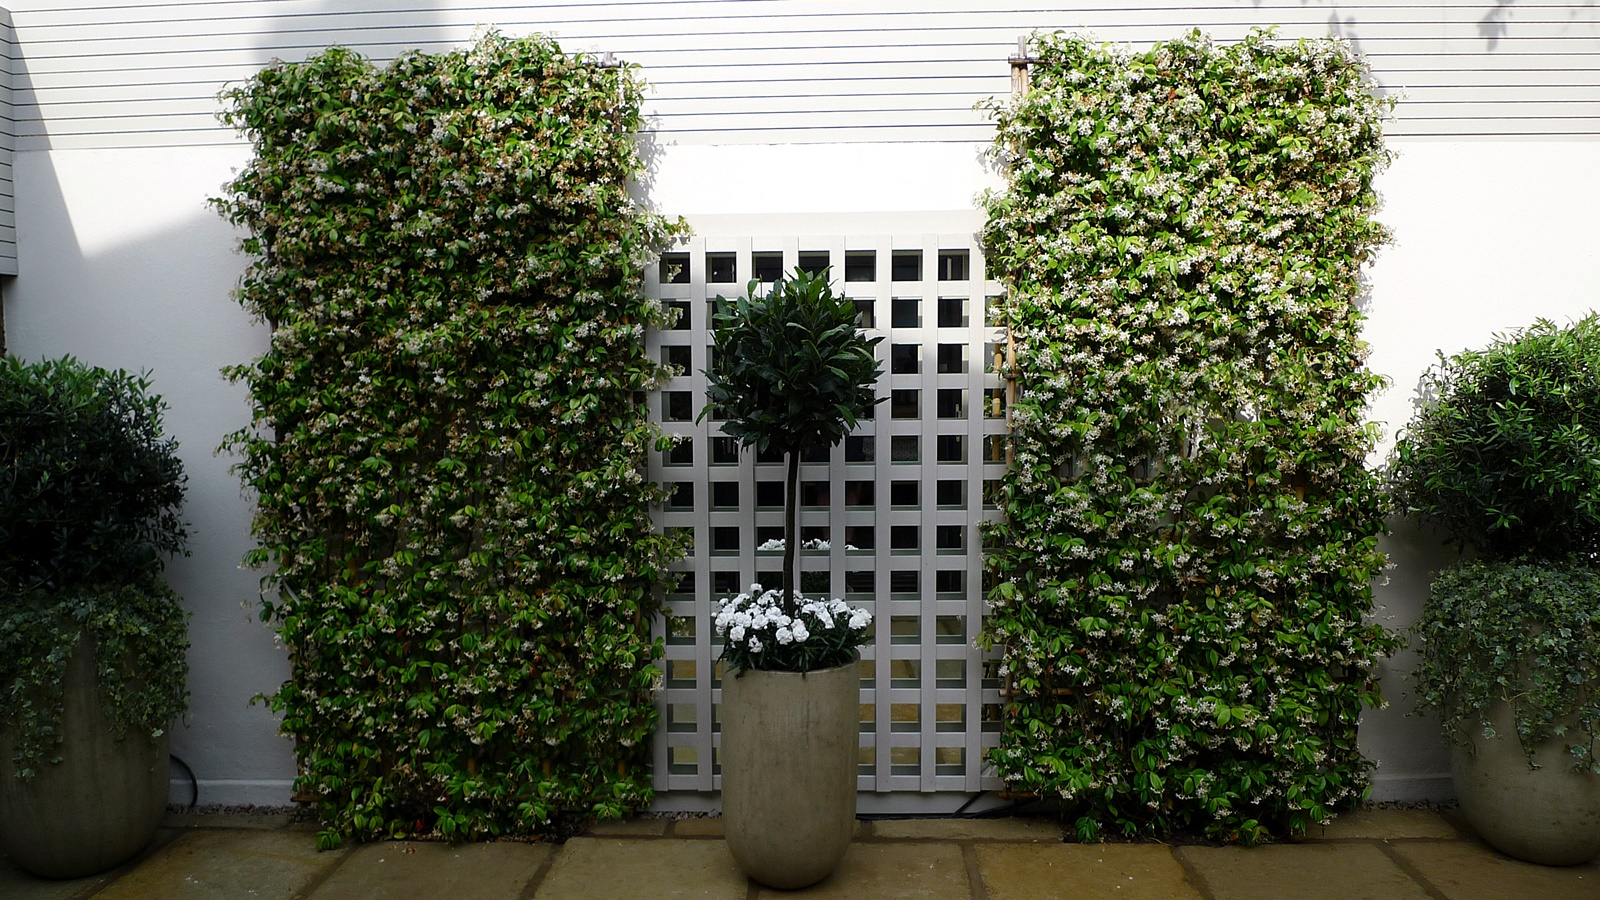 Courtyard minimalist contemporary garden design and designer mayfairlondon